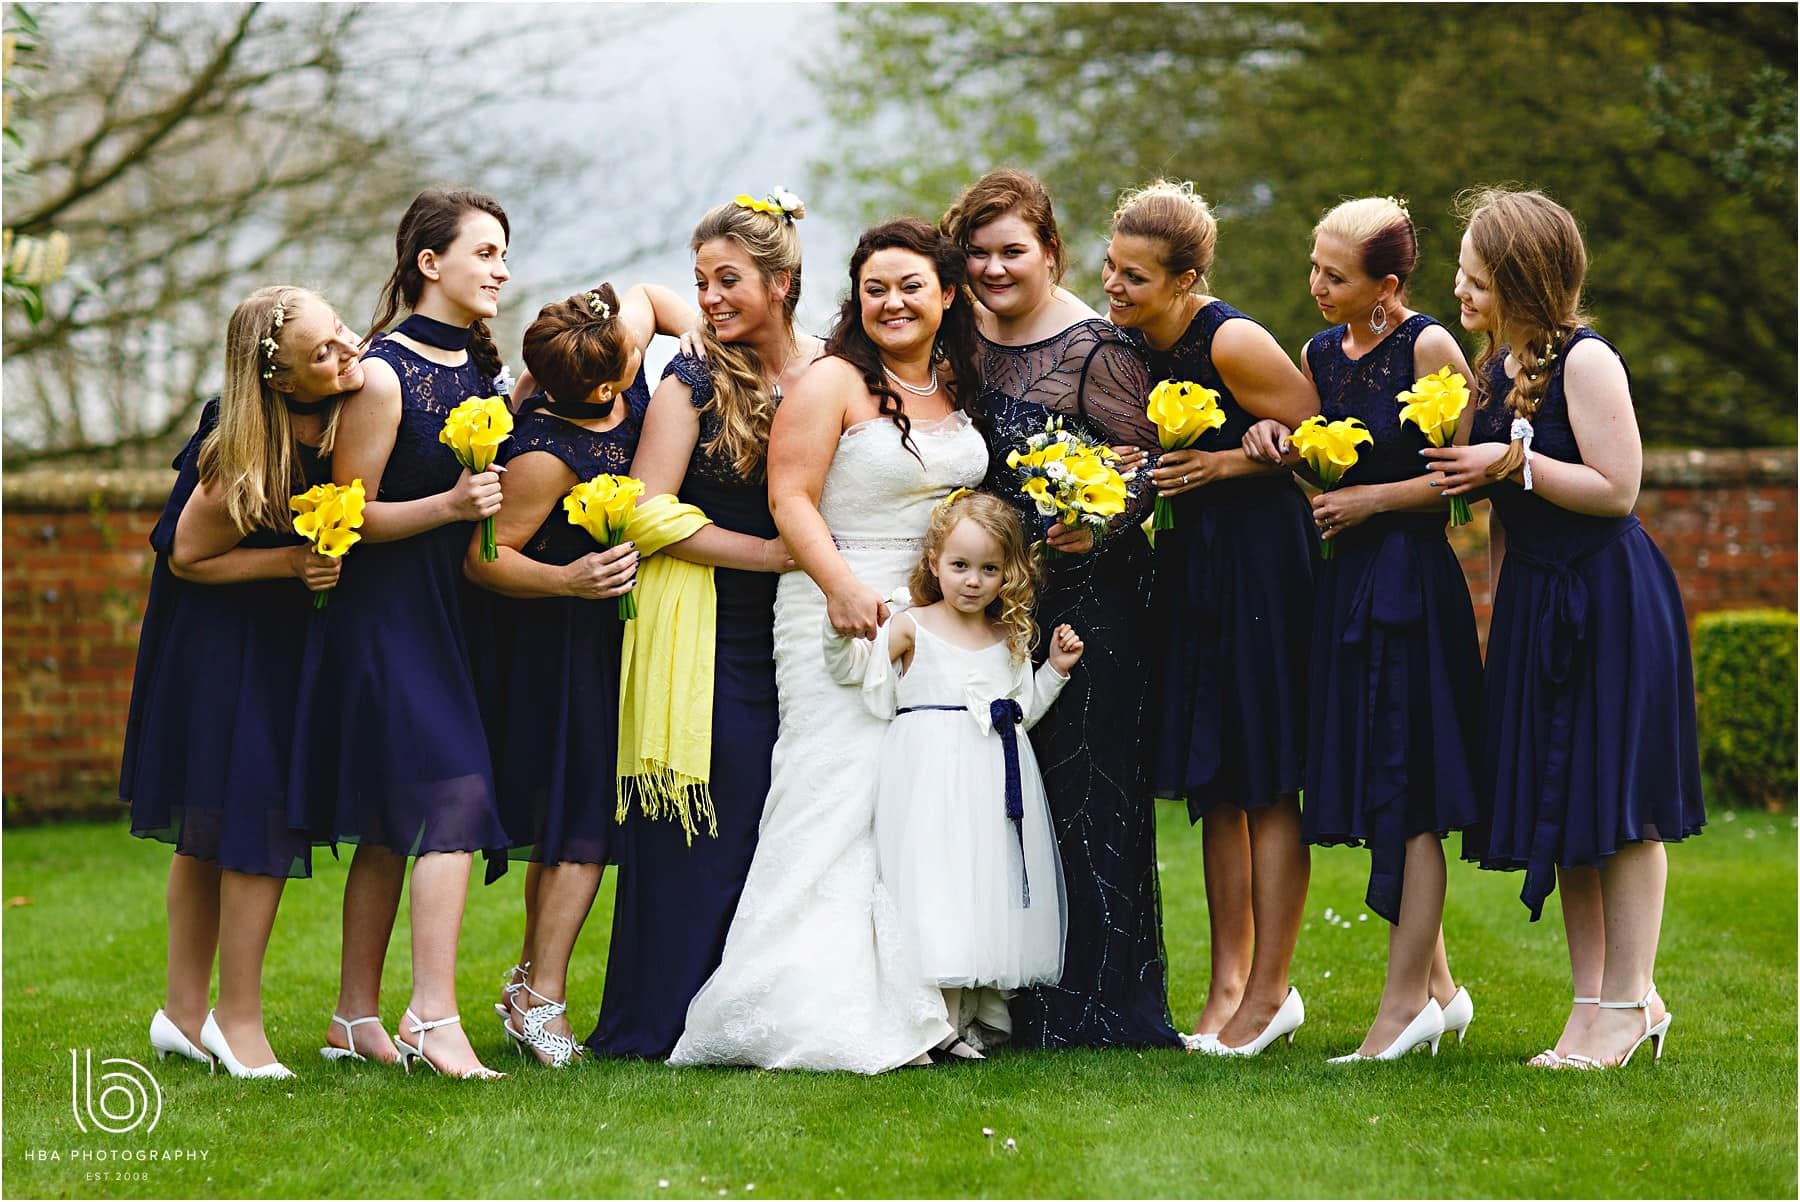 the bride and her bridesmaids in yellow and blue